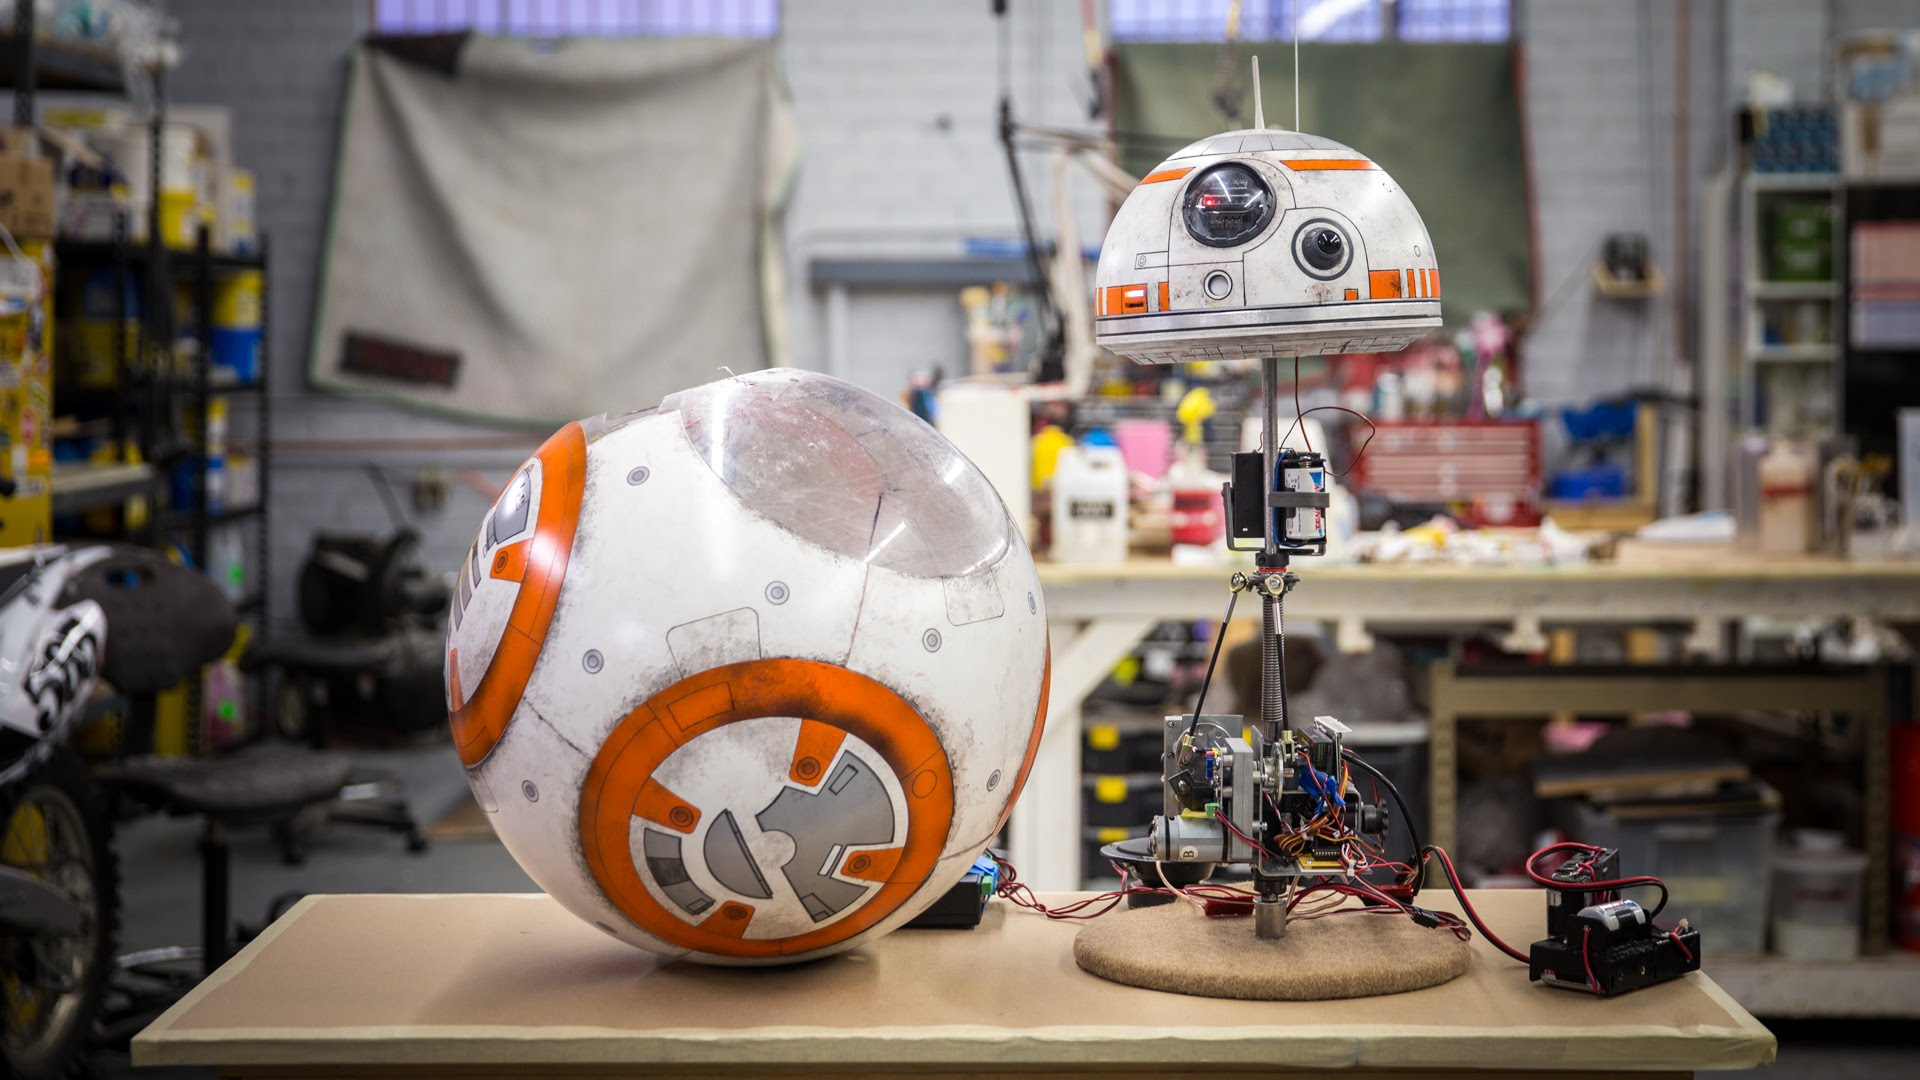 A Real Life Remote Controlled Version Of The Lovable Star Wars Bb